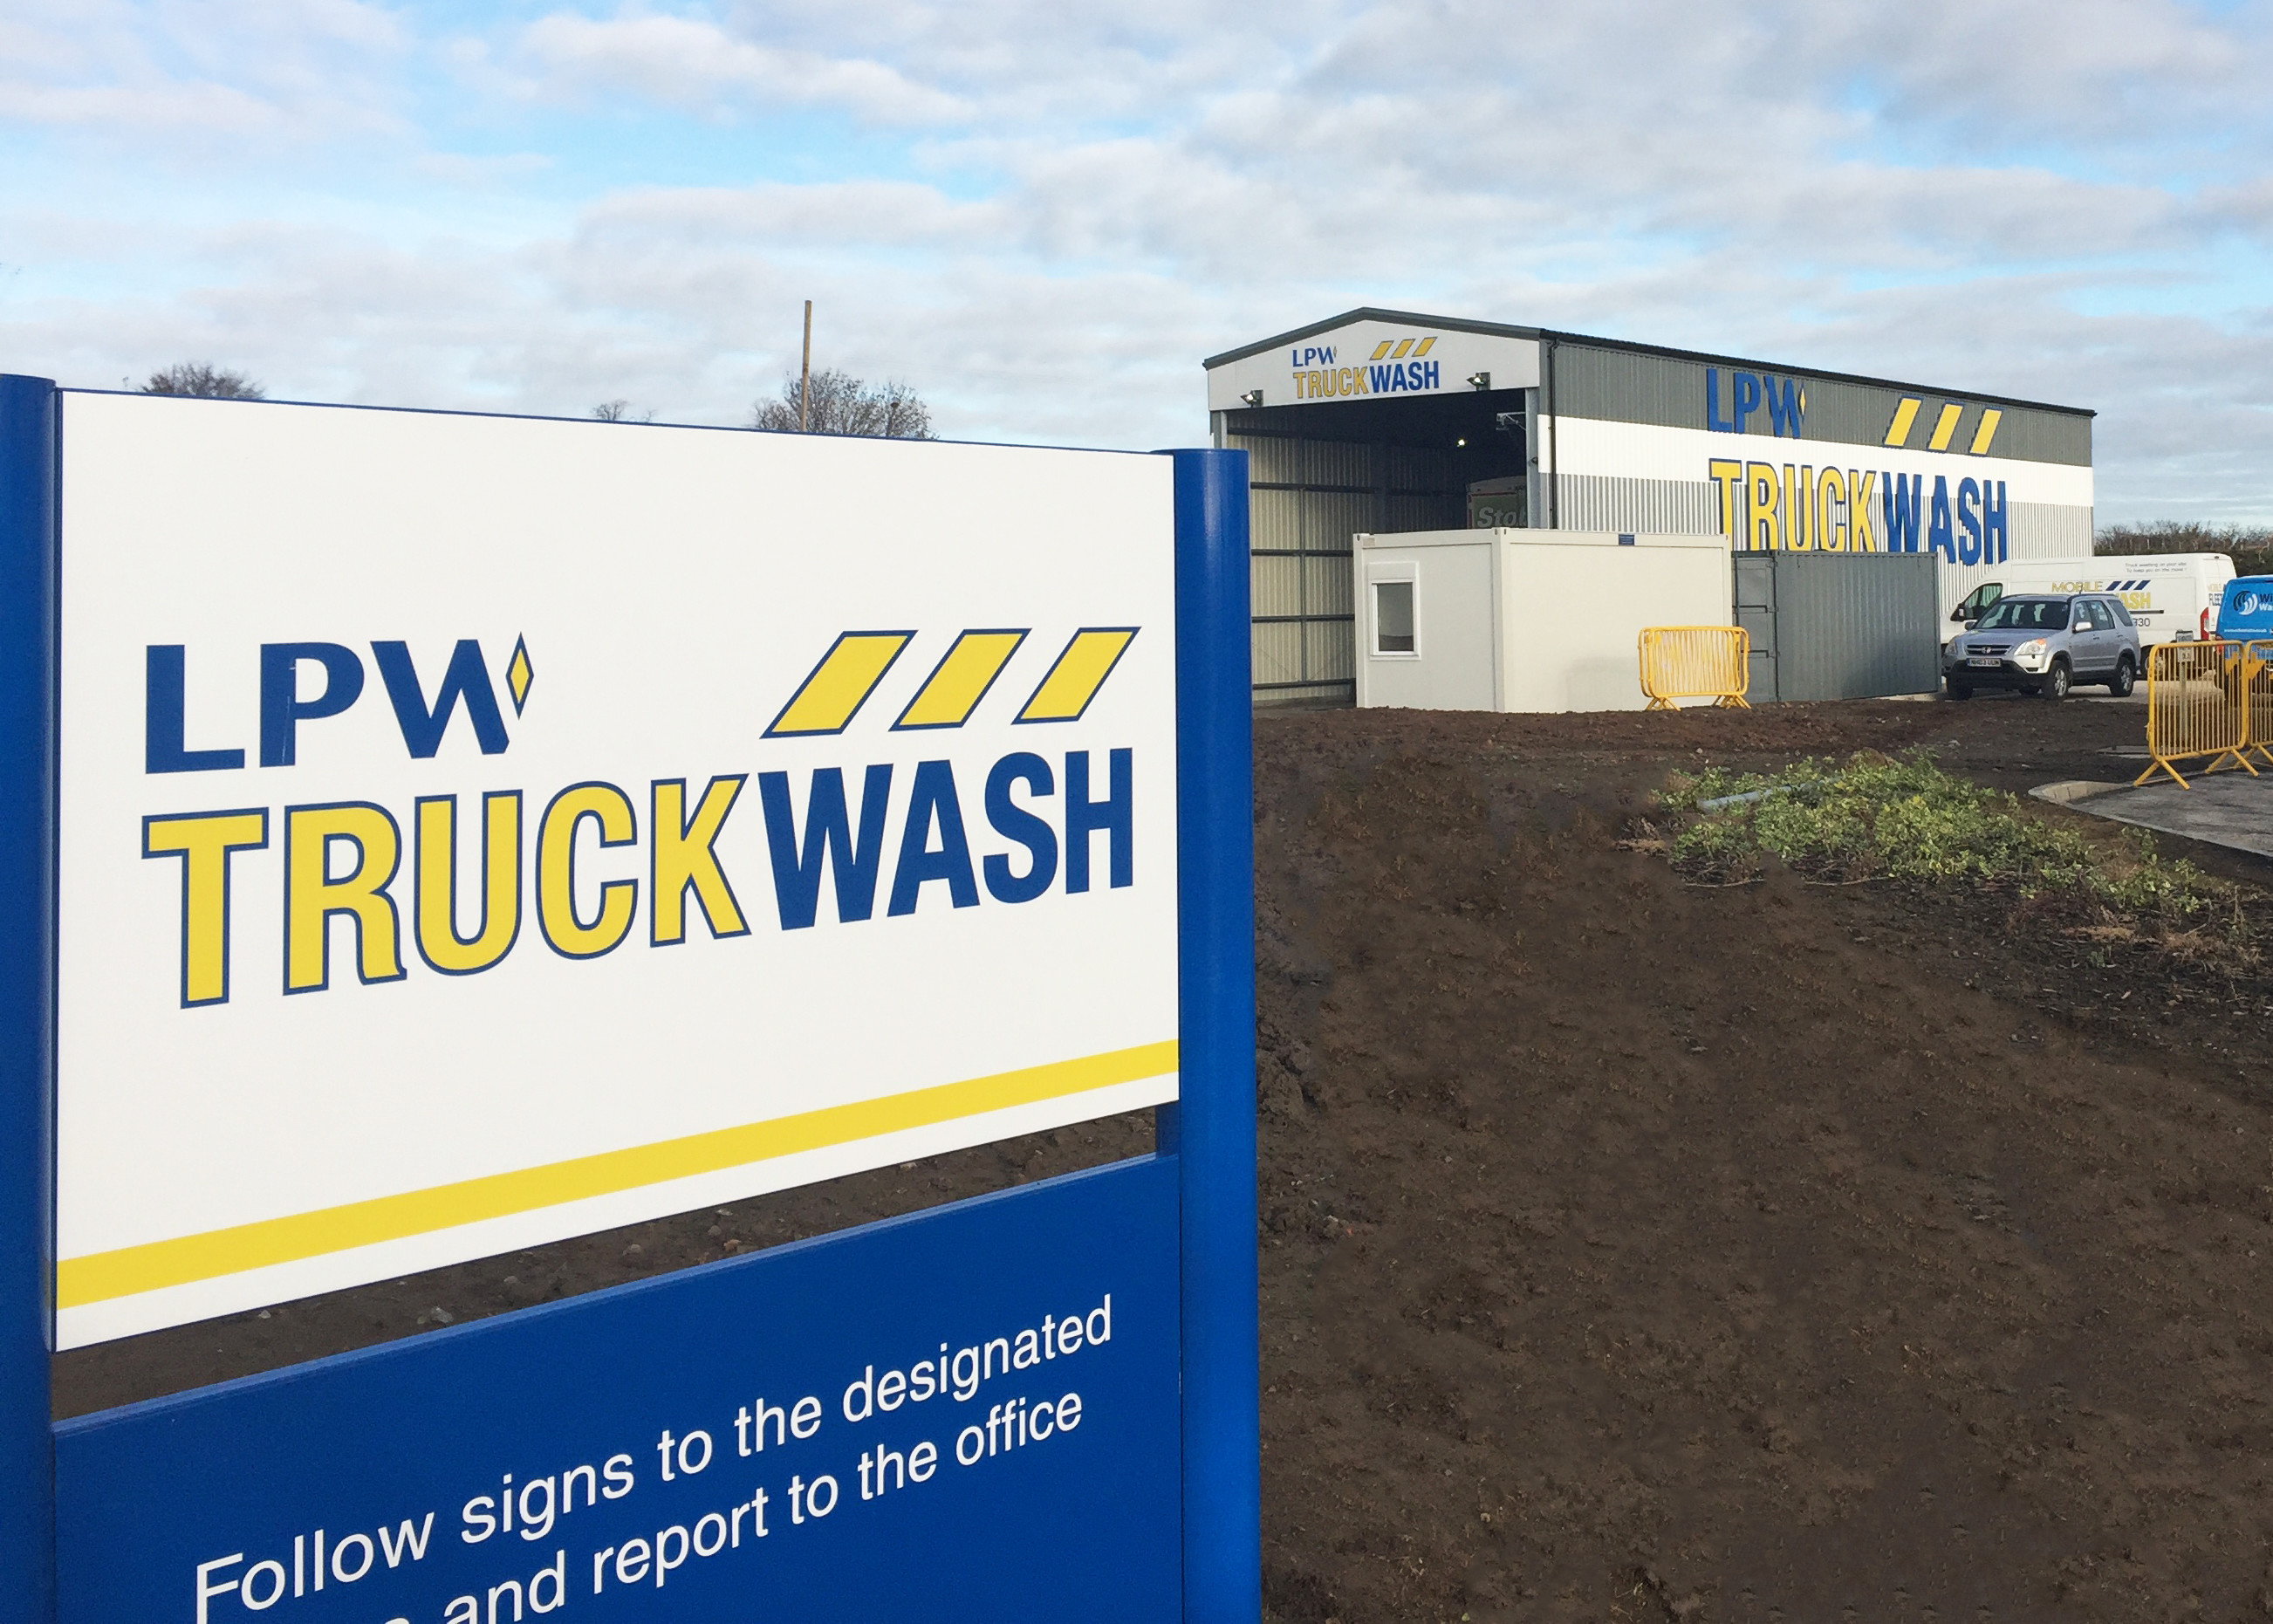 North Yorkshire Truck Wash